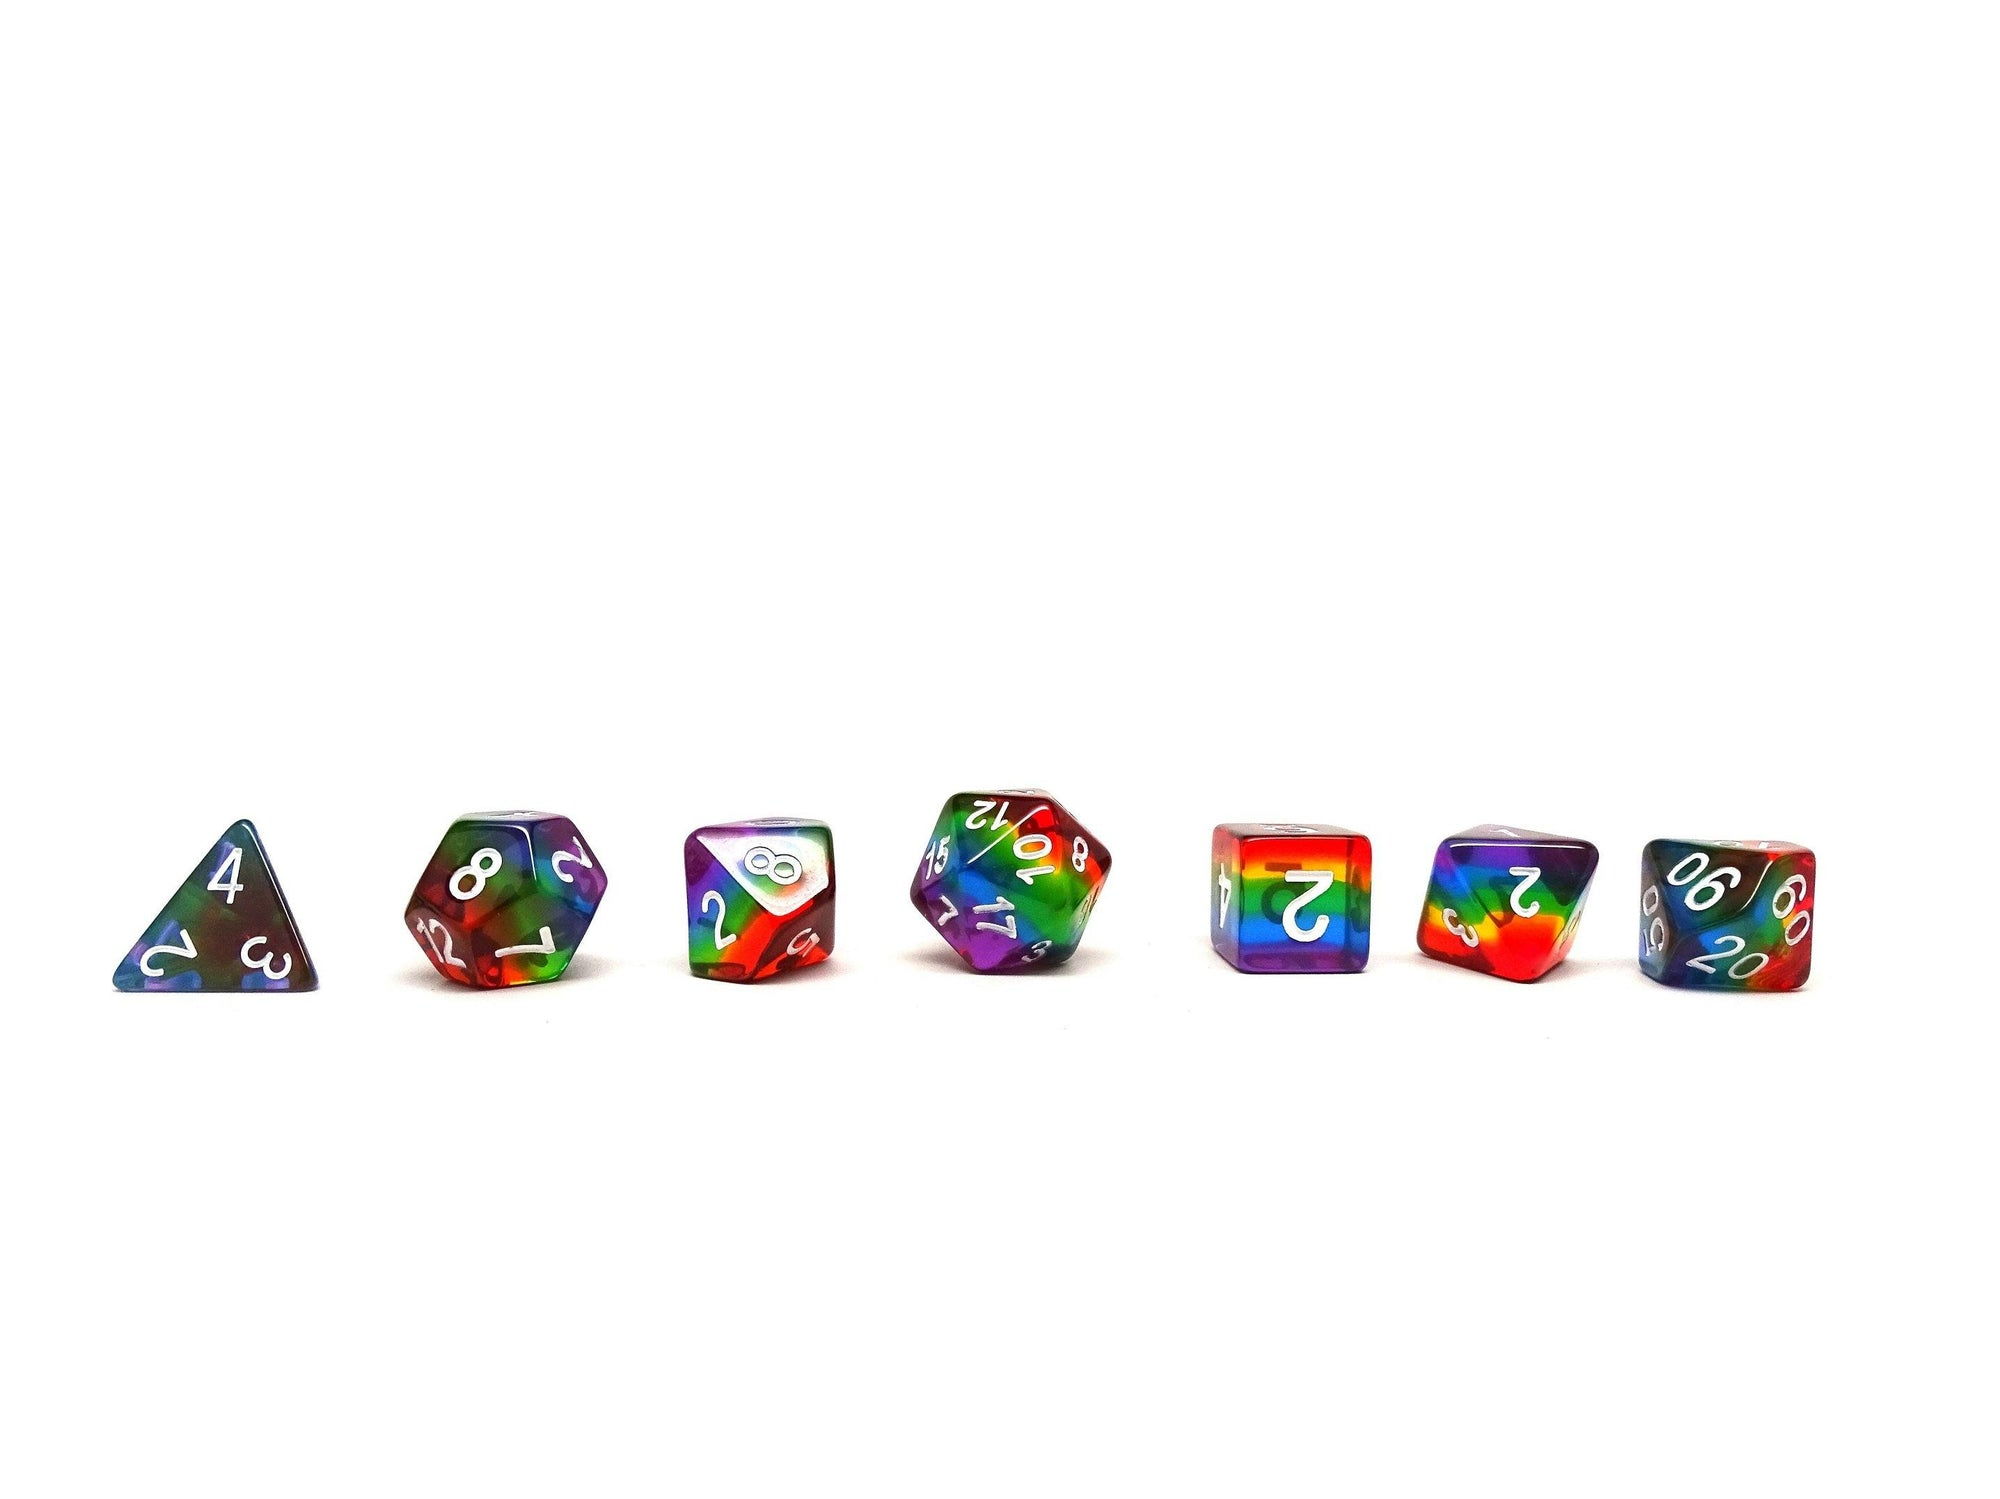 Rainbow Prism Dice Collection - 7 Piece Set